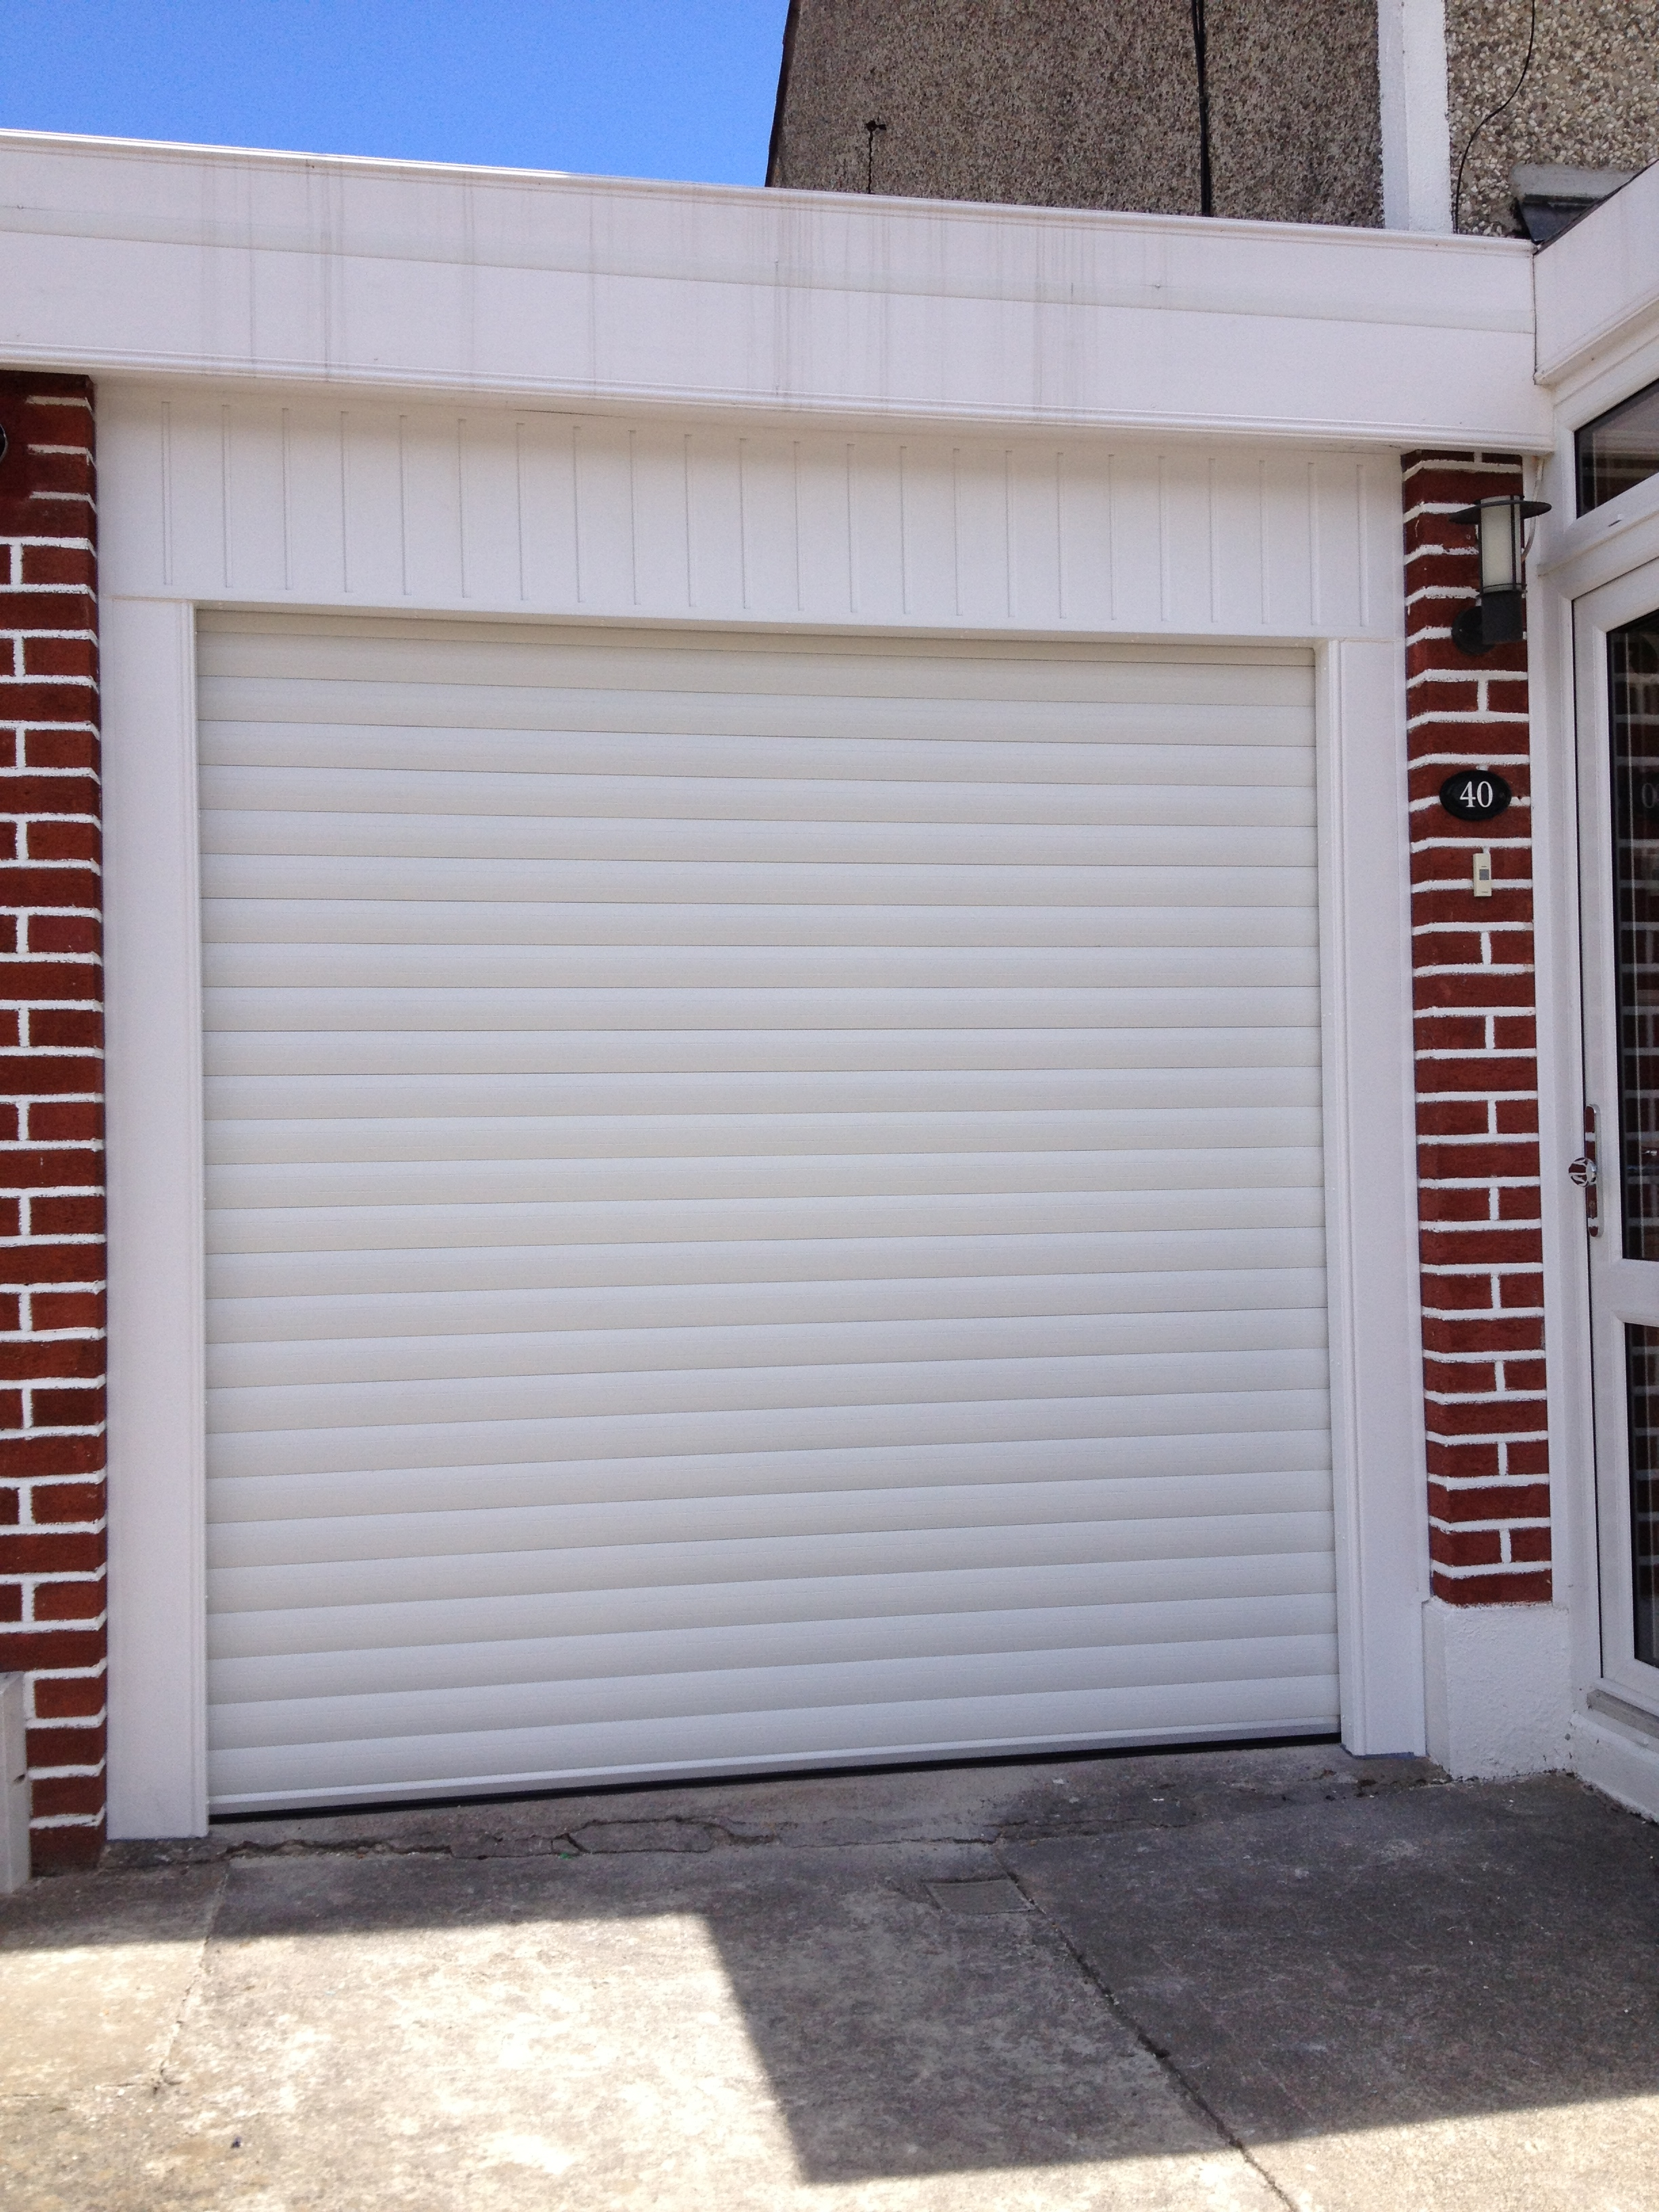 doors rolling stratco image improvement id roller products door garage home